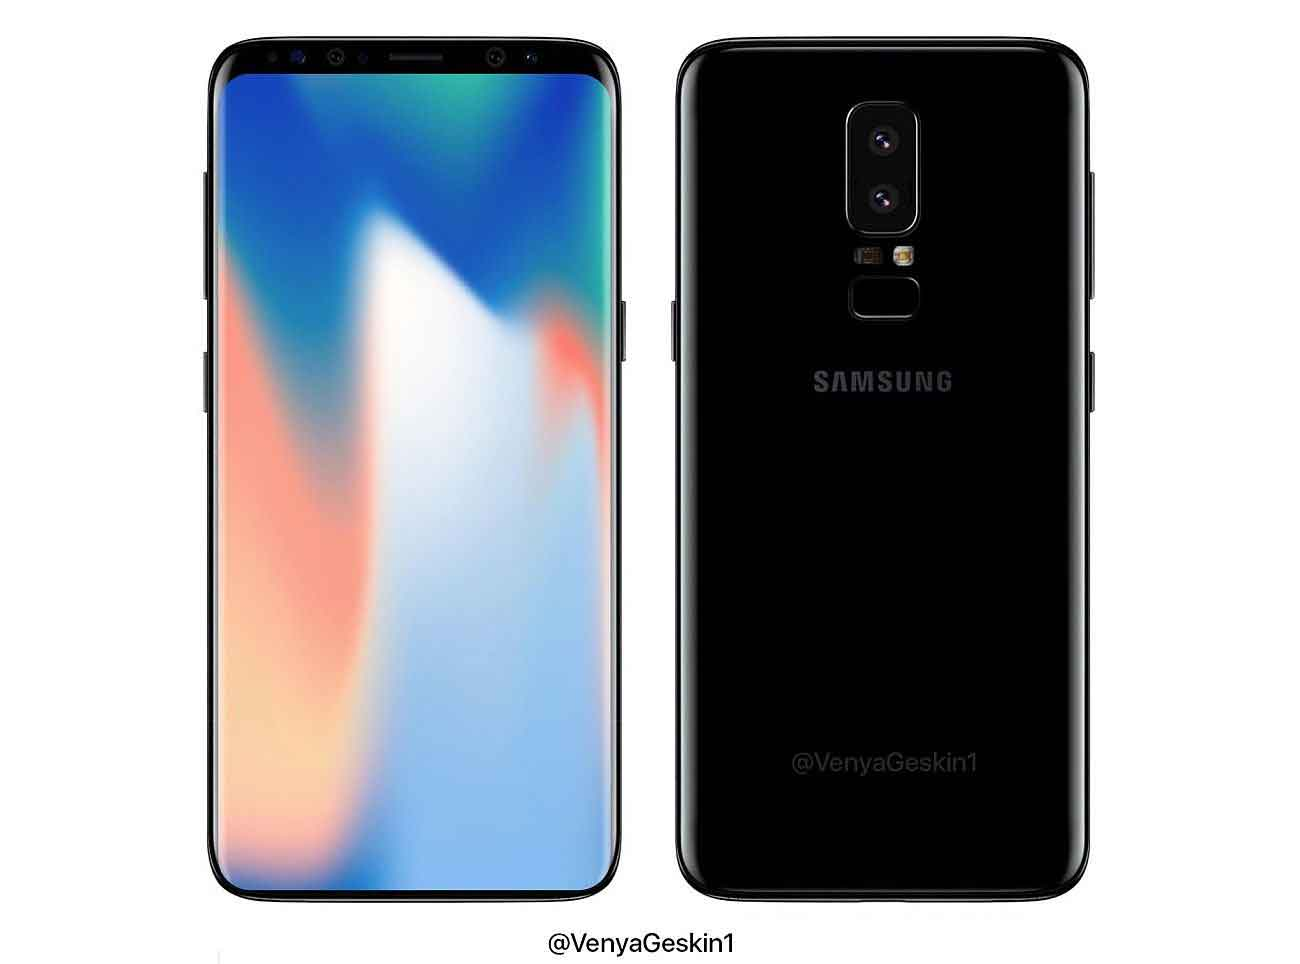 Samsung confirms that the new flagship Galaxy S9 will be released in February this year